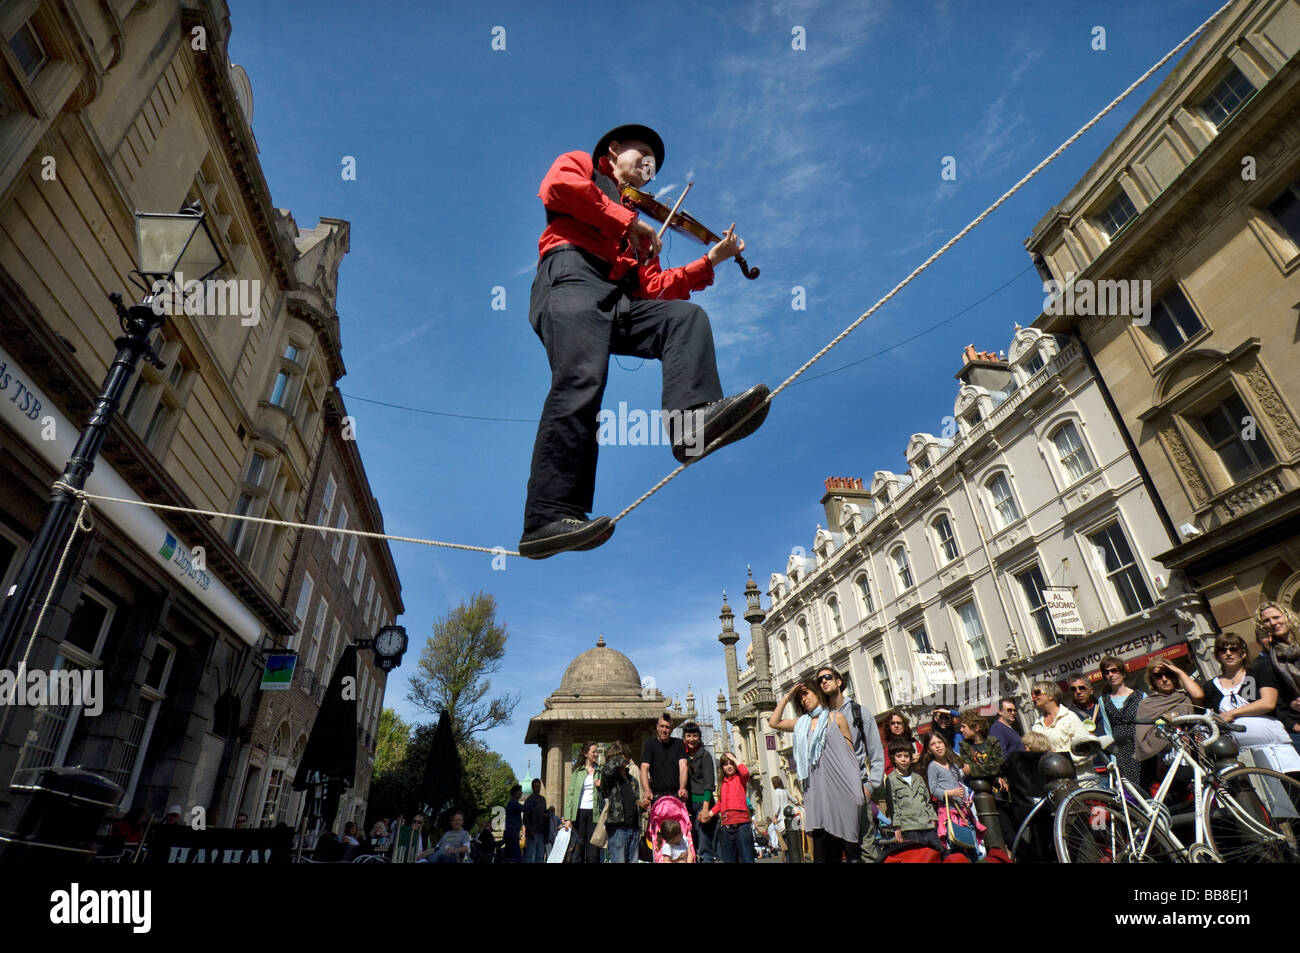 A Street Theatre busker plays a violin while balancing  on a tightrope during Brighton Festival - Stock Image